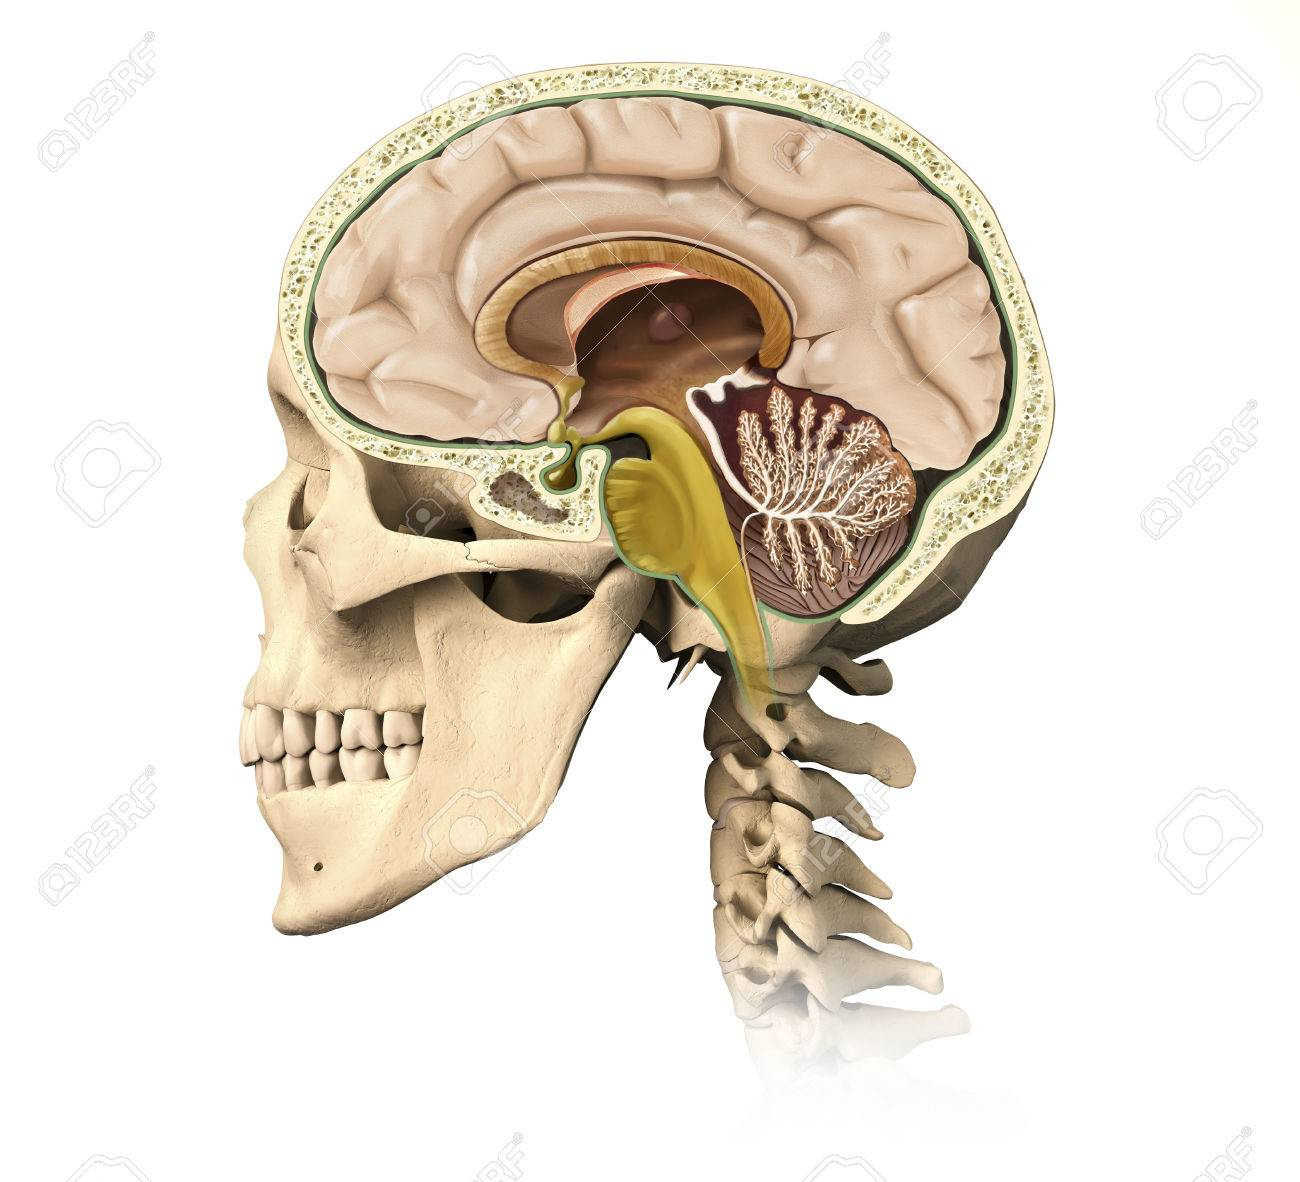 Cutaway View Of Human Skull Showing Brain Details, Side View. Stock ...